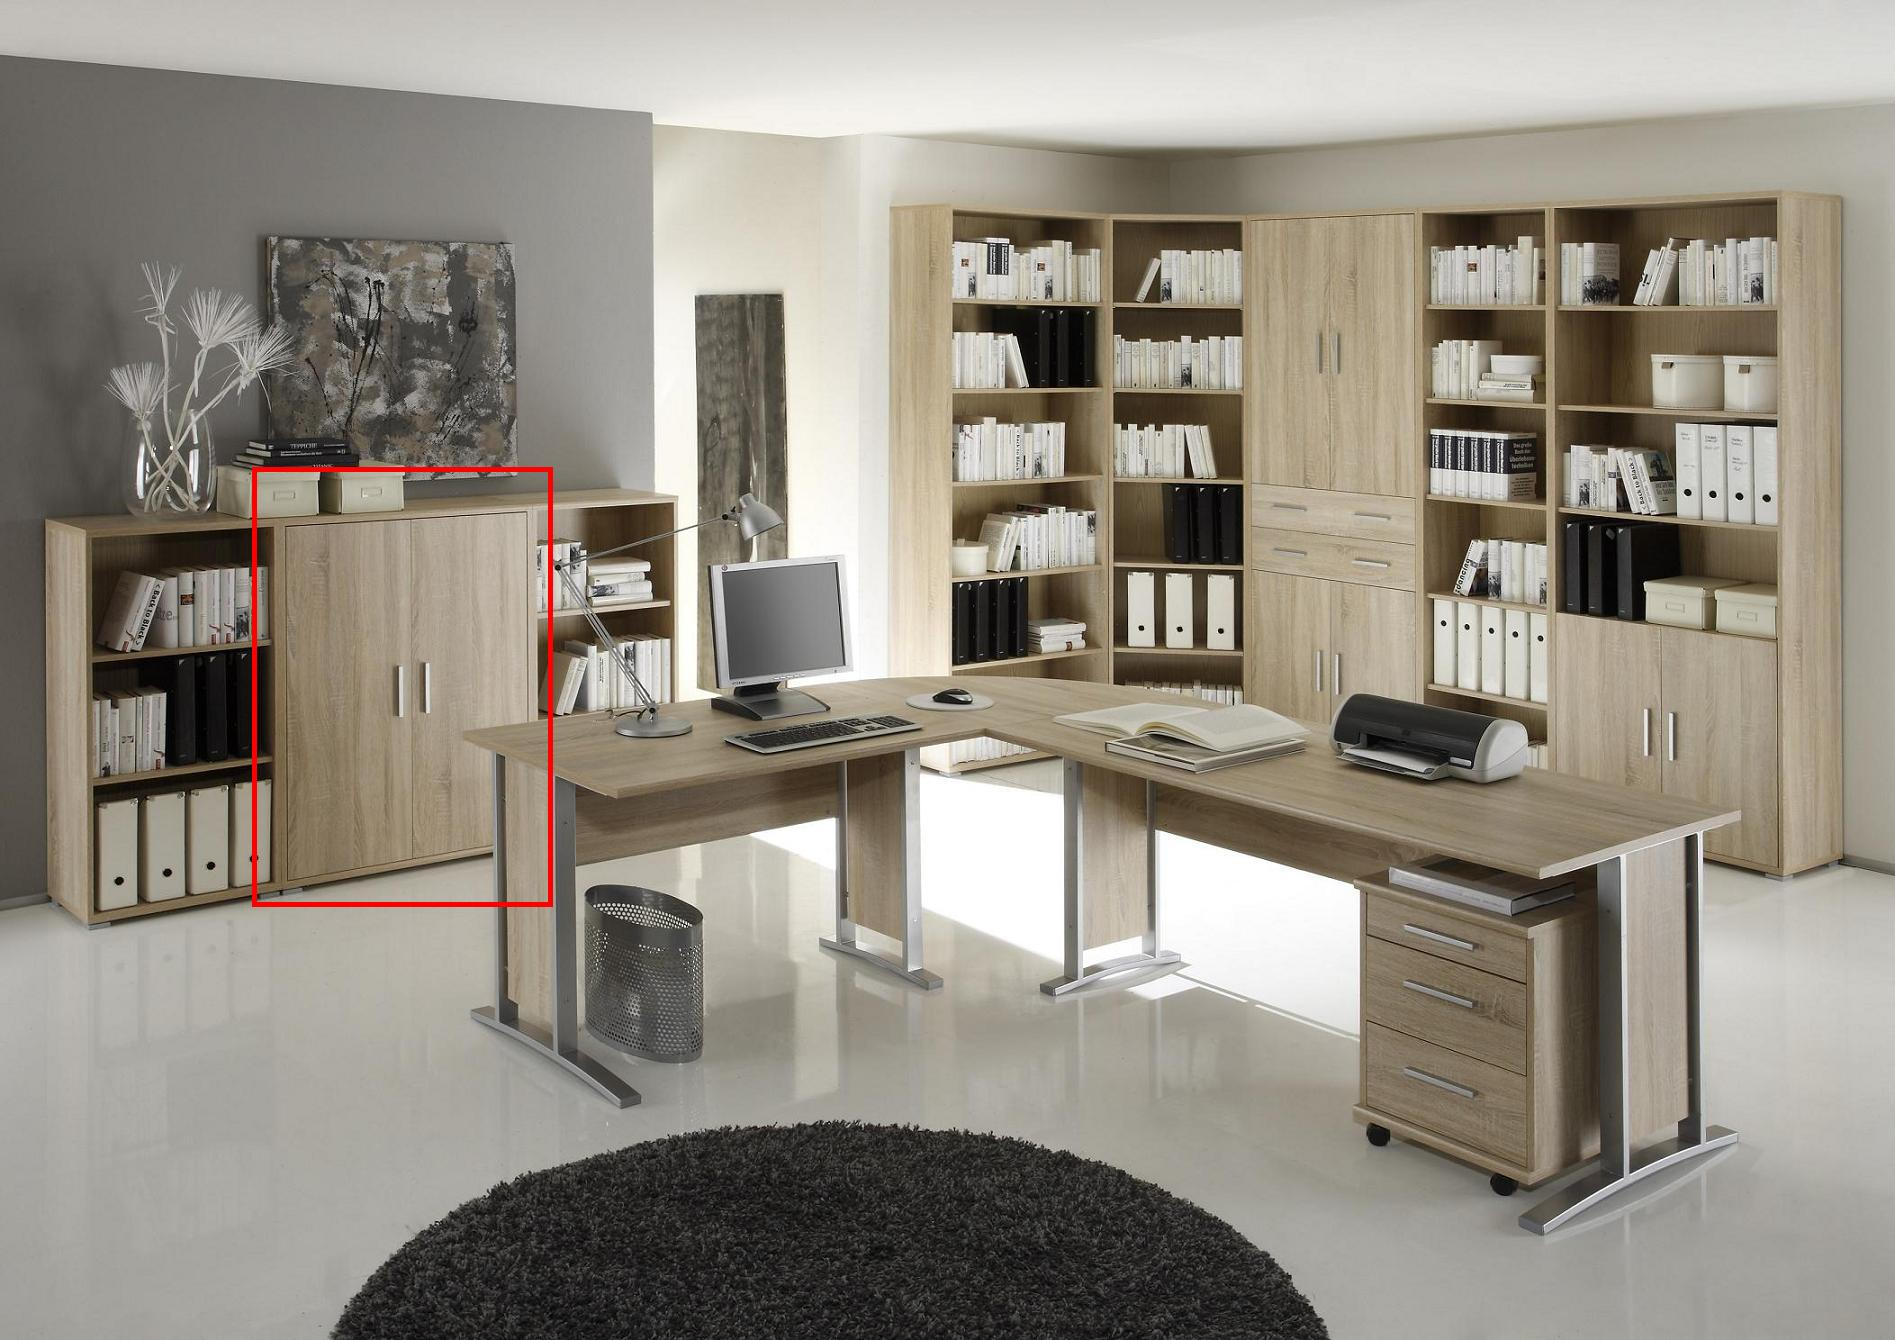 schrank office line von bega sonoma. Black Bedroom Furniture Sets. Home Design Ideas